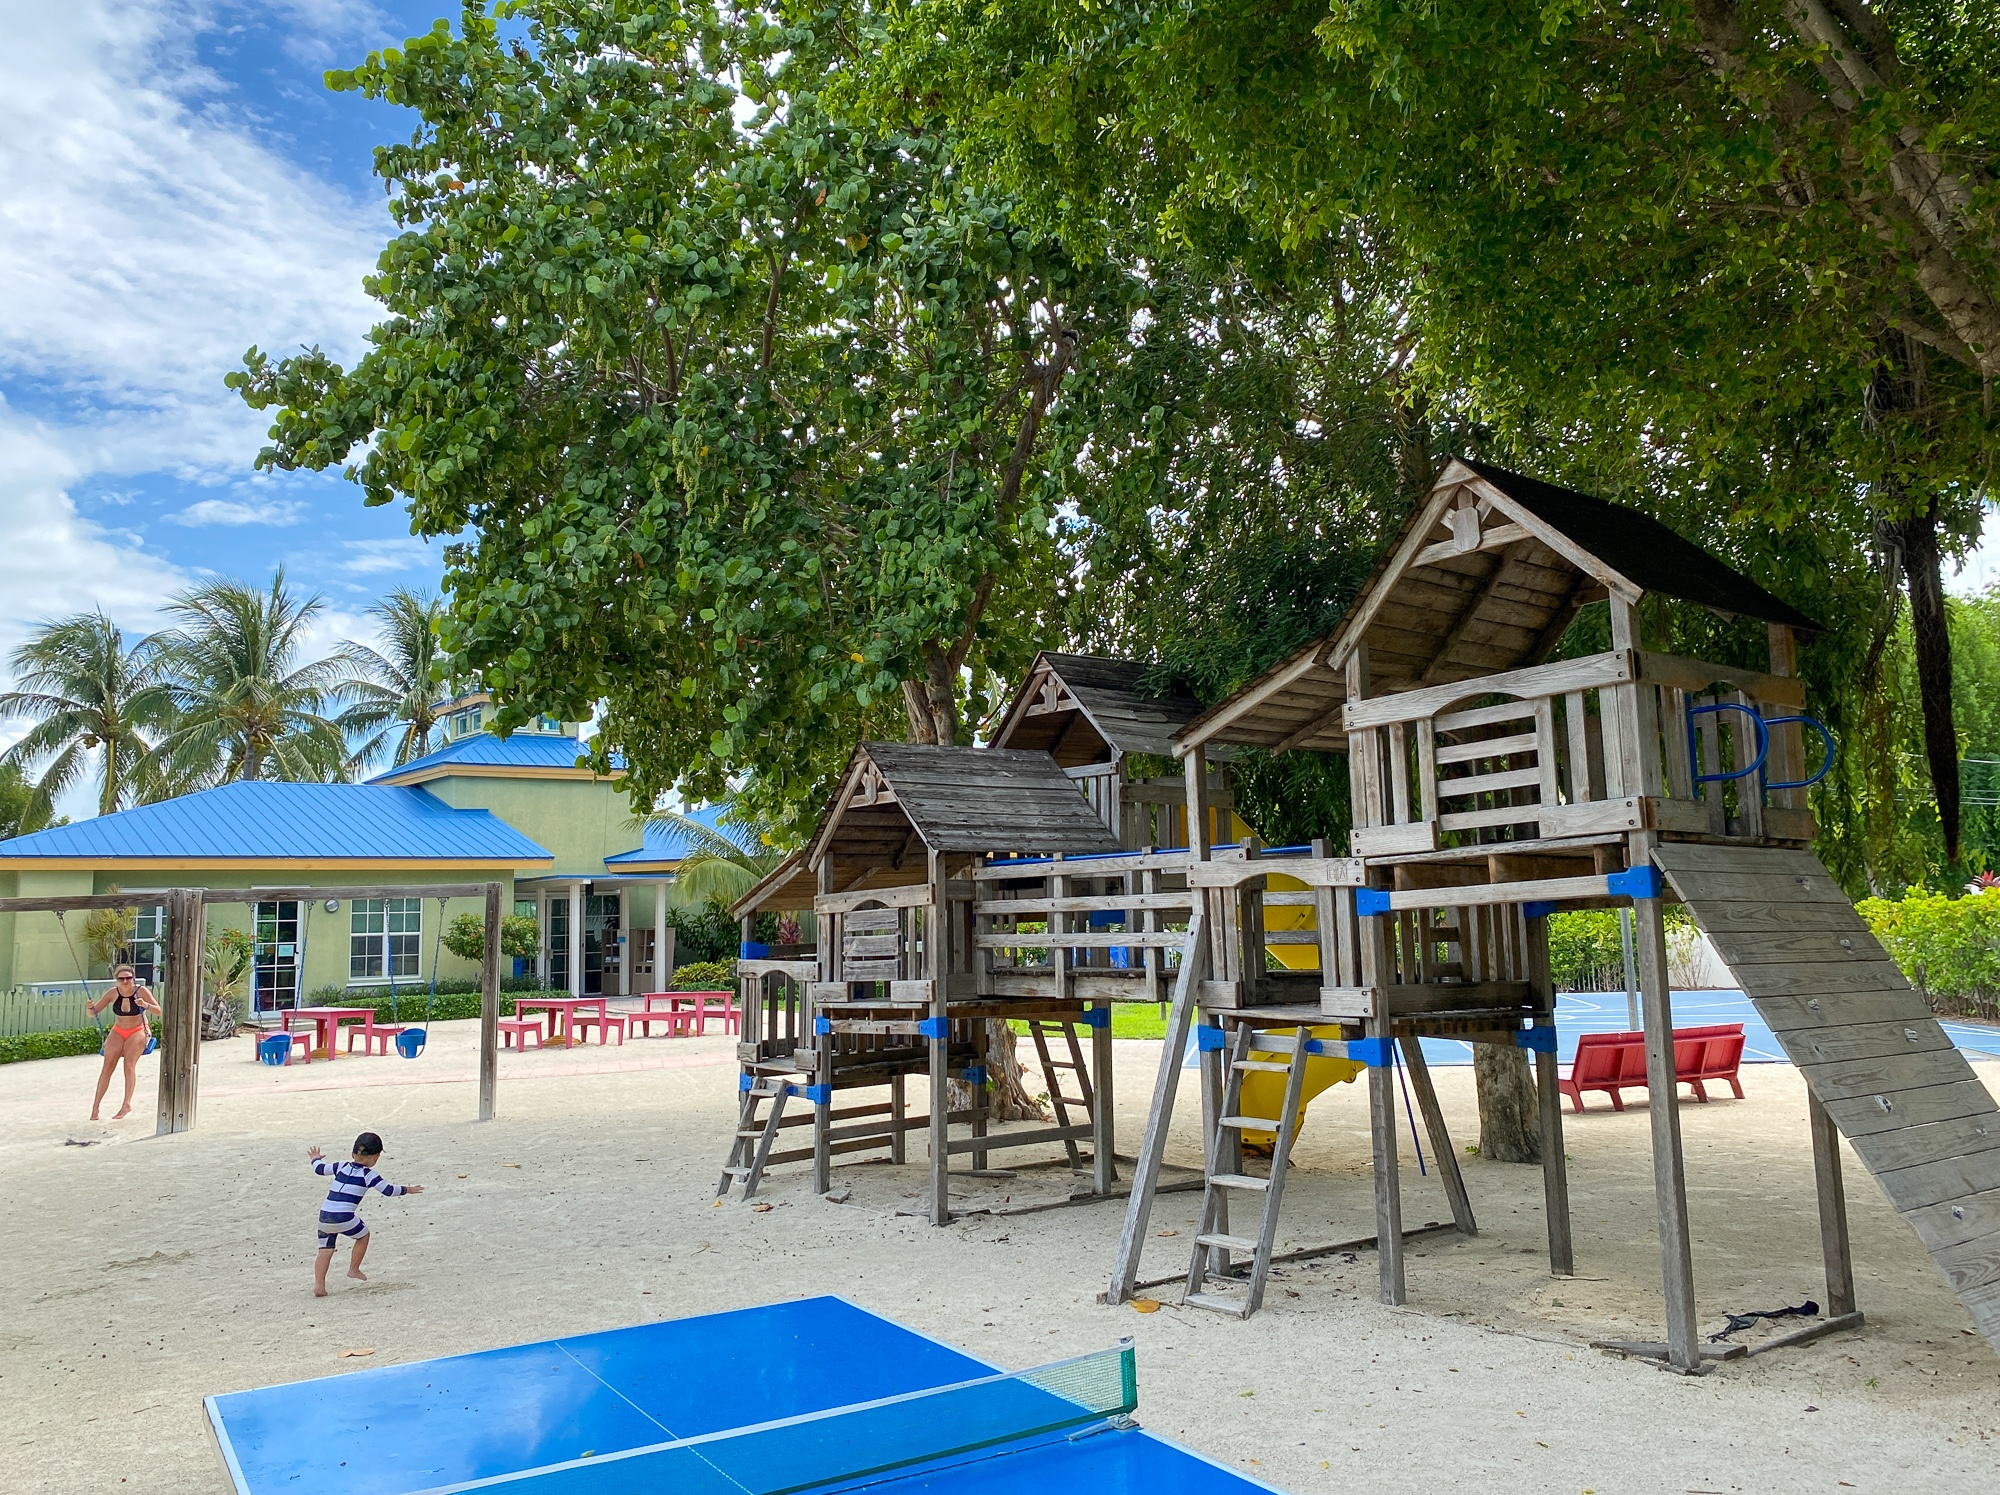 Playground at Hawks Cay Resort with kids